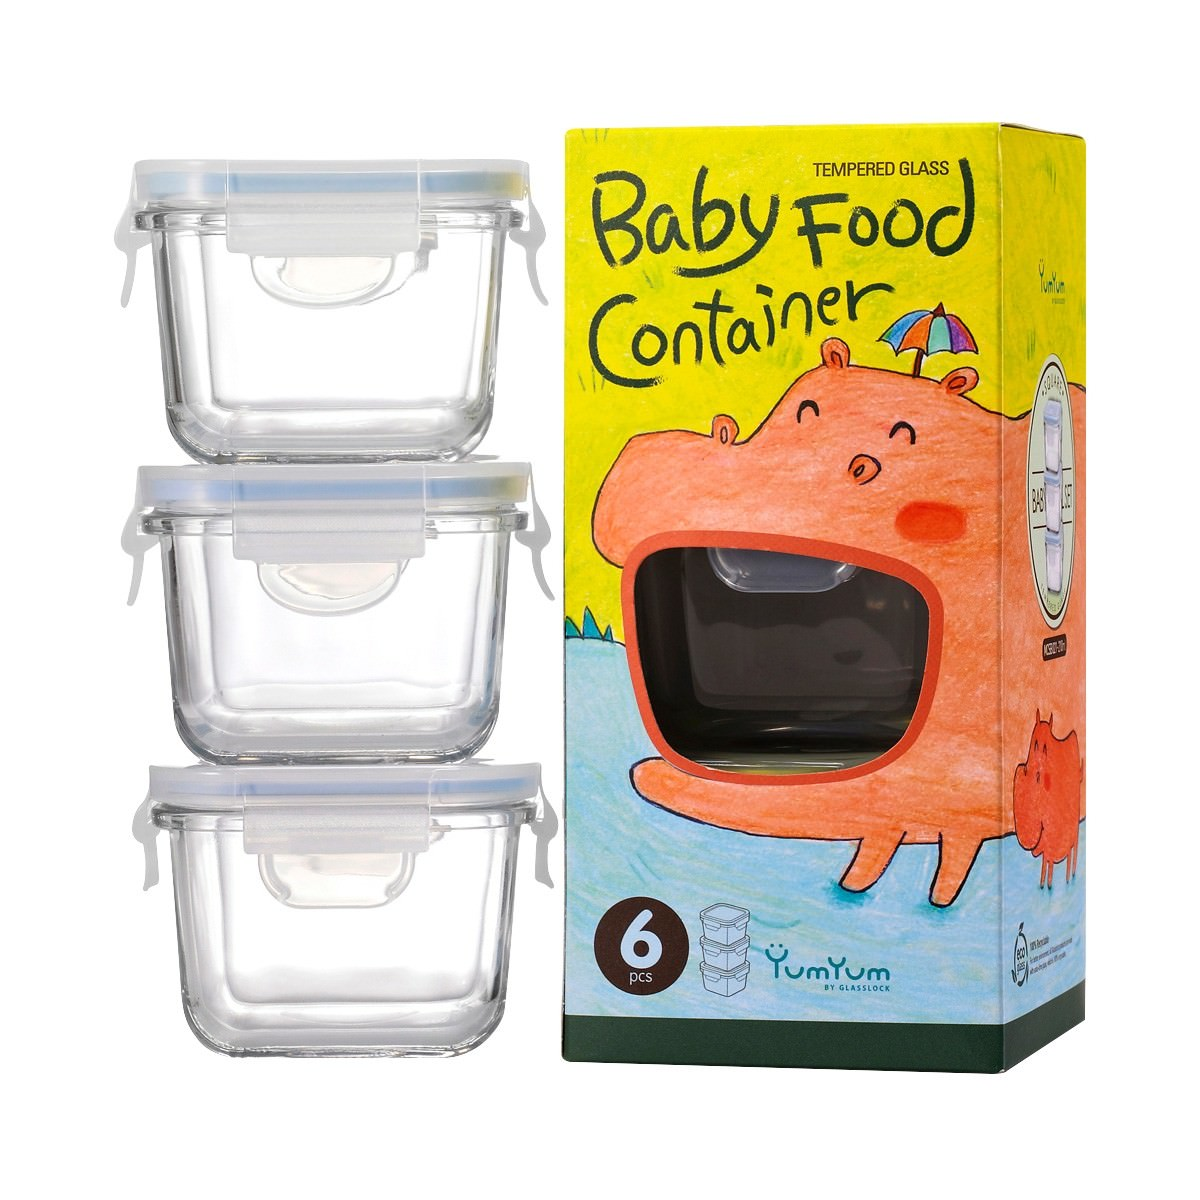 Glasslock 3 Piece Square Baby Food Container Set